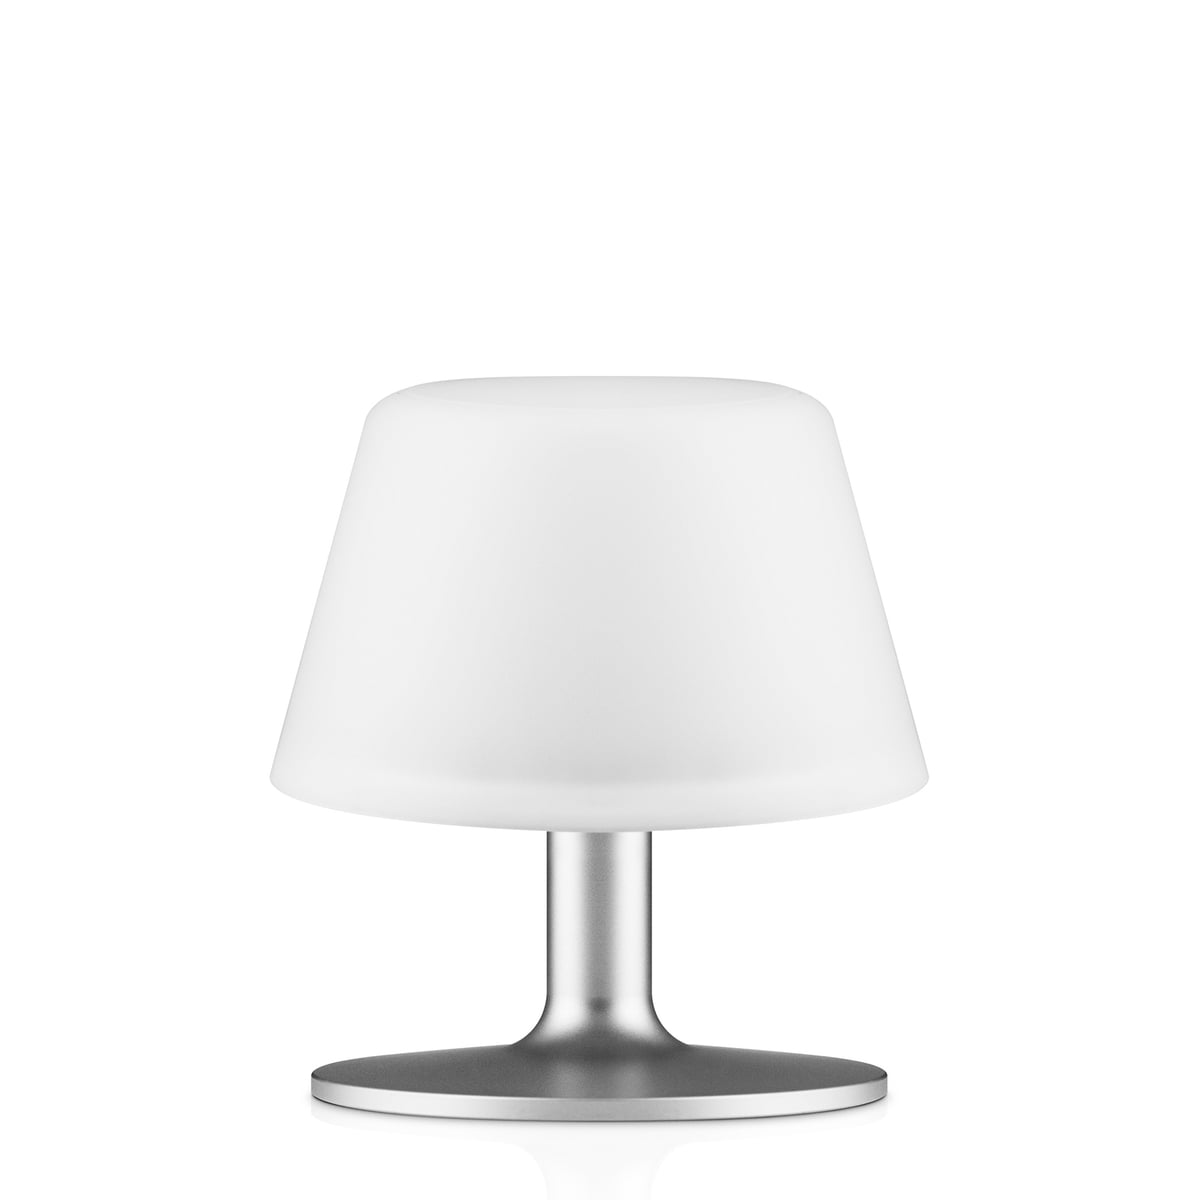 Eva Solo Sunlight Table Lamp